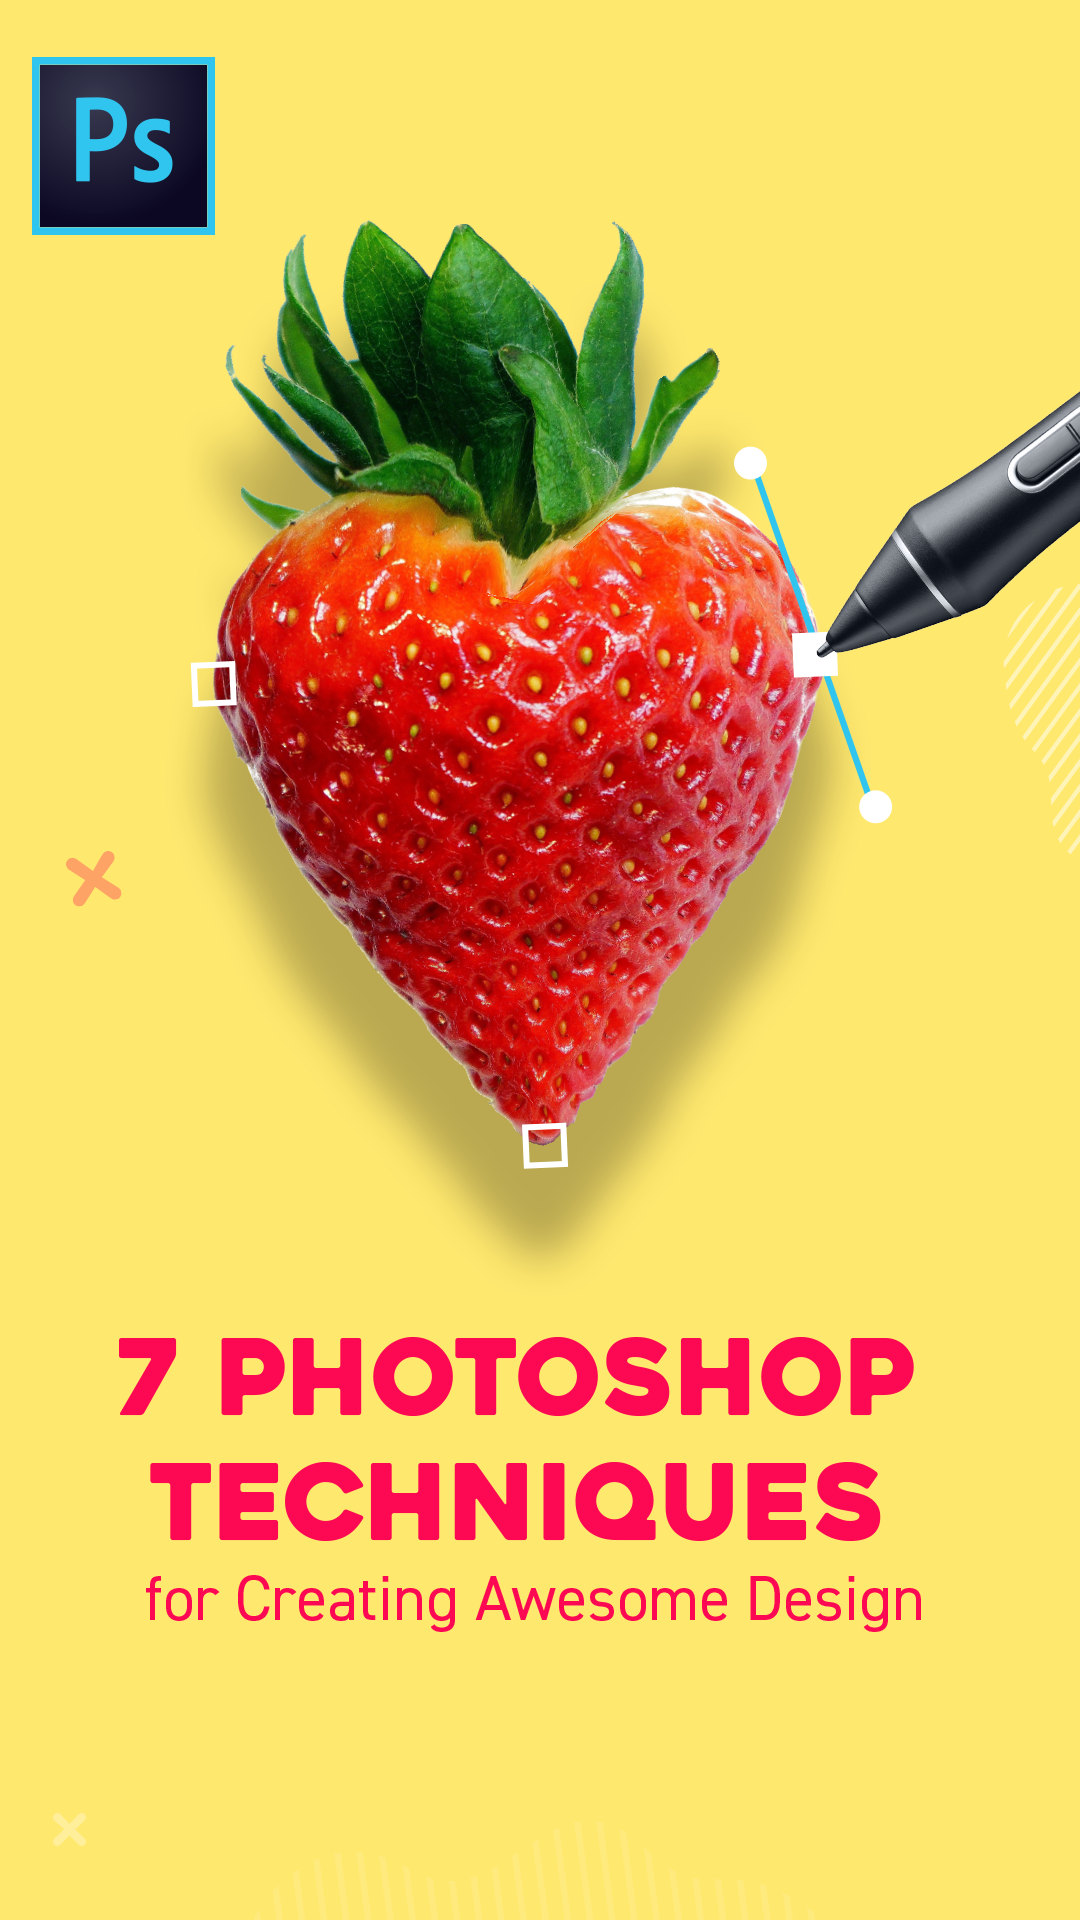 7 Photoshop Techniques for Creating Awesome Design #graphicdesign